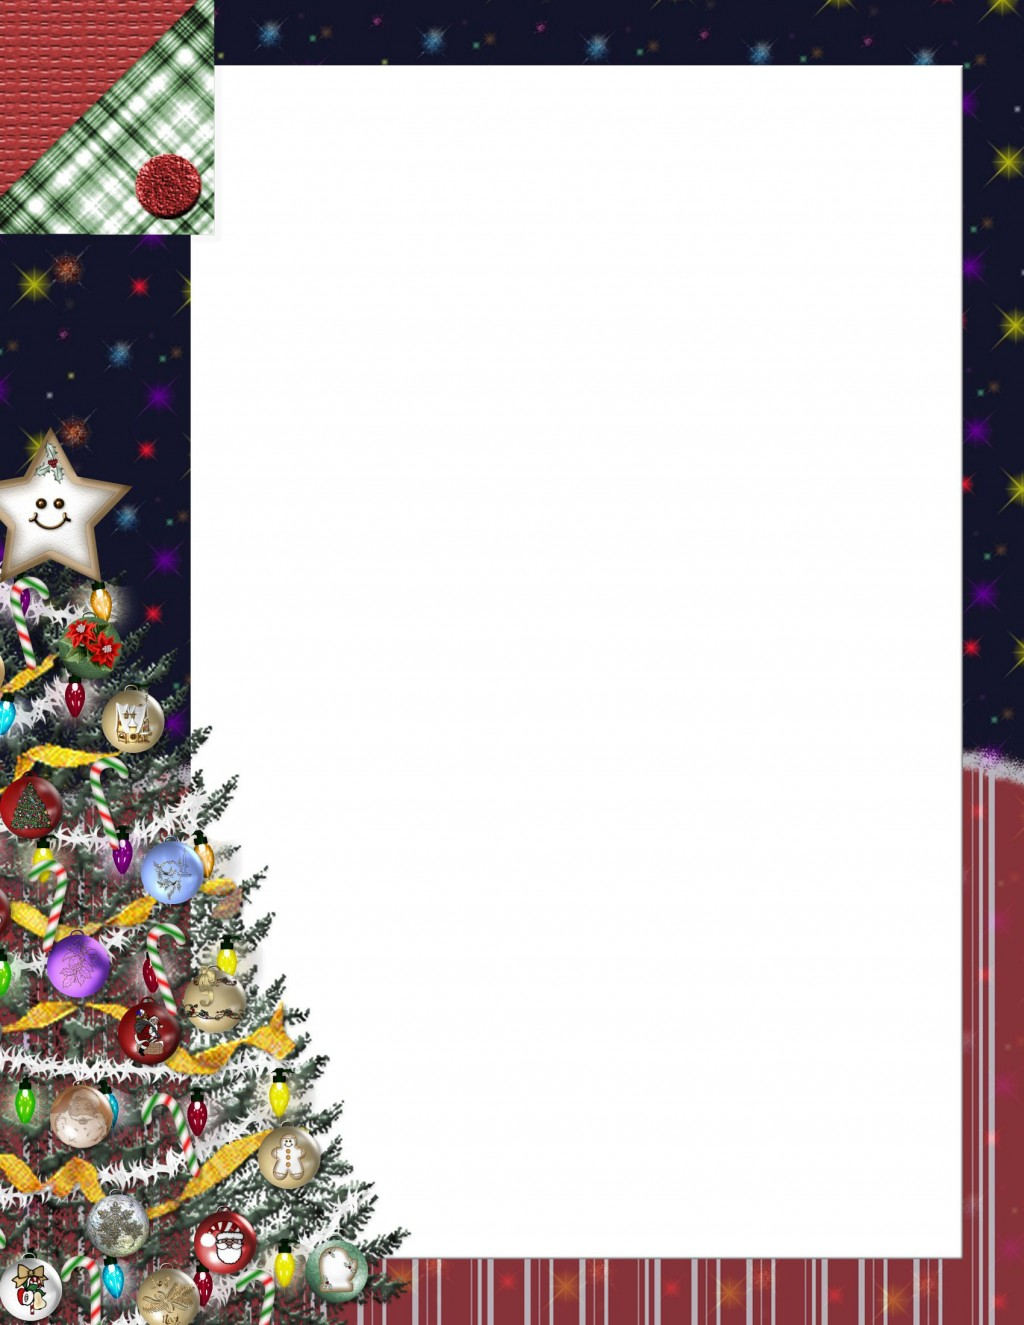 006 Singular Christma Stationery Template Word Free Highest Quality  Religiou For DownloadableLarge